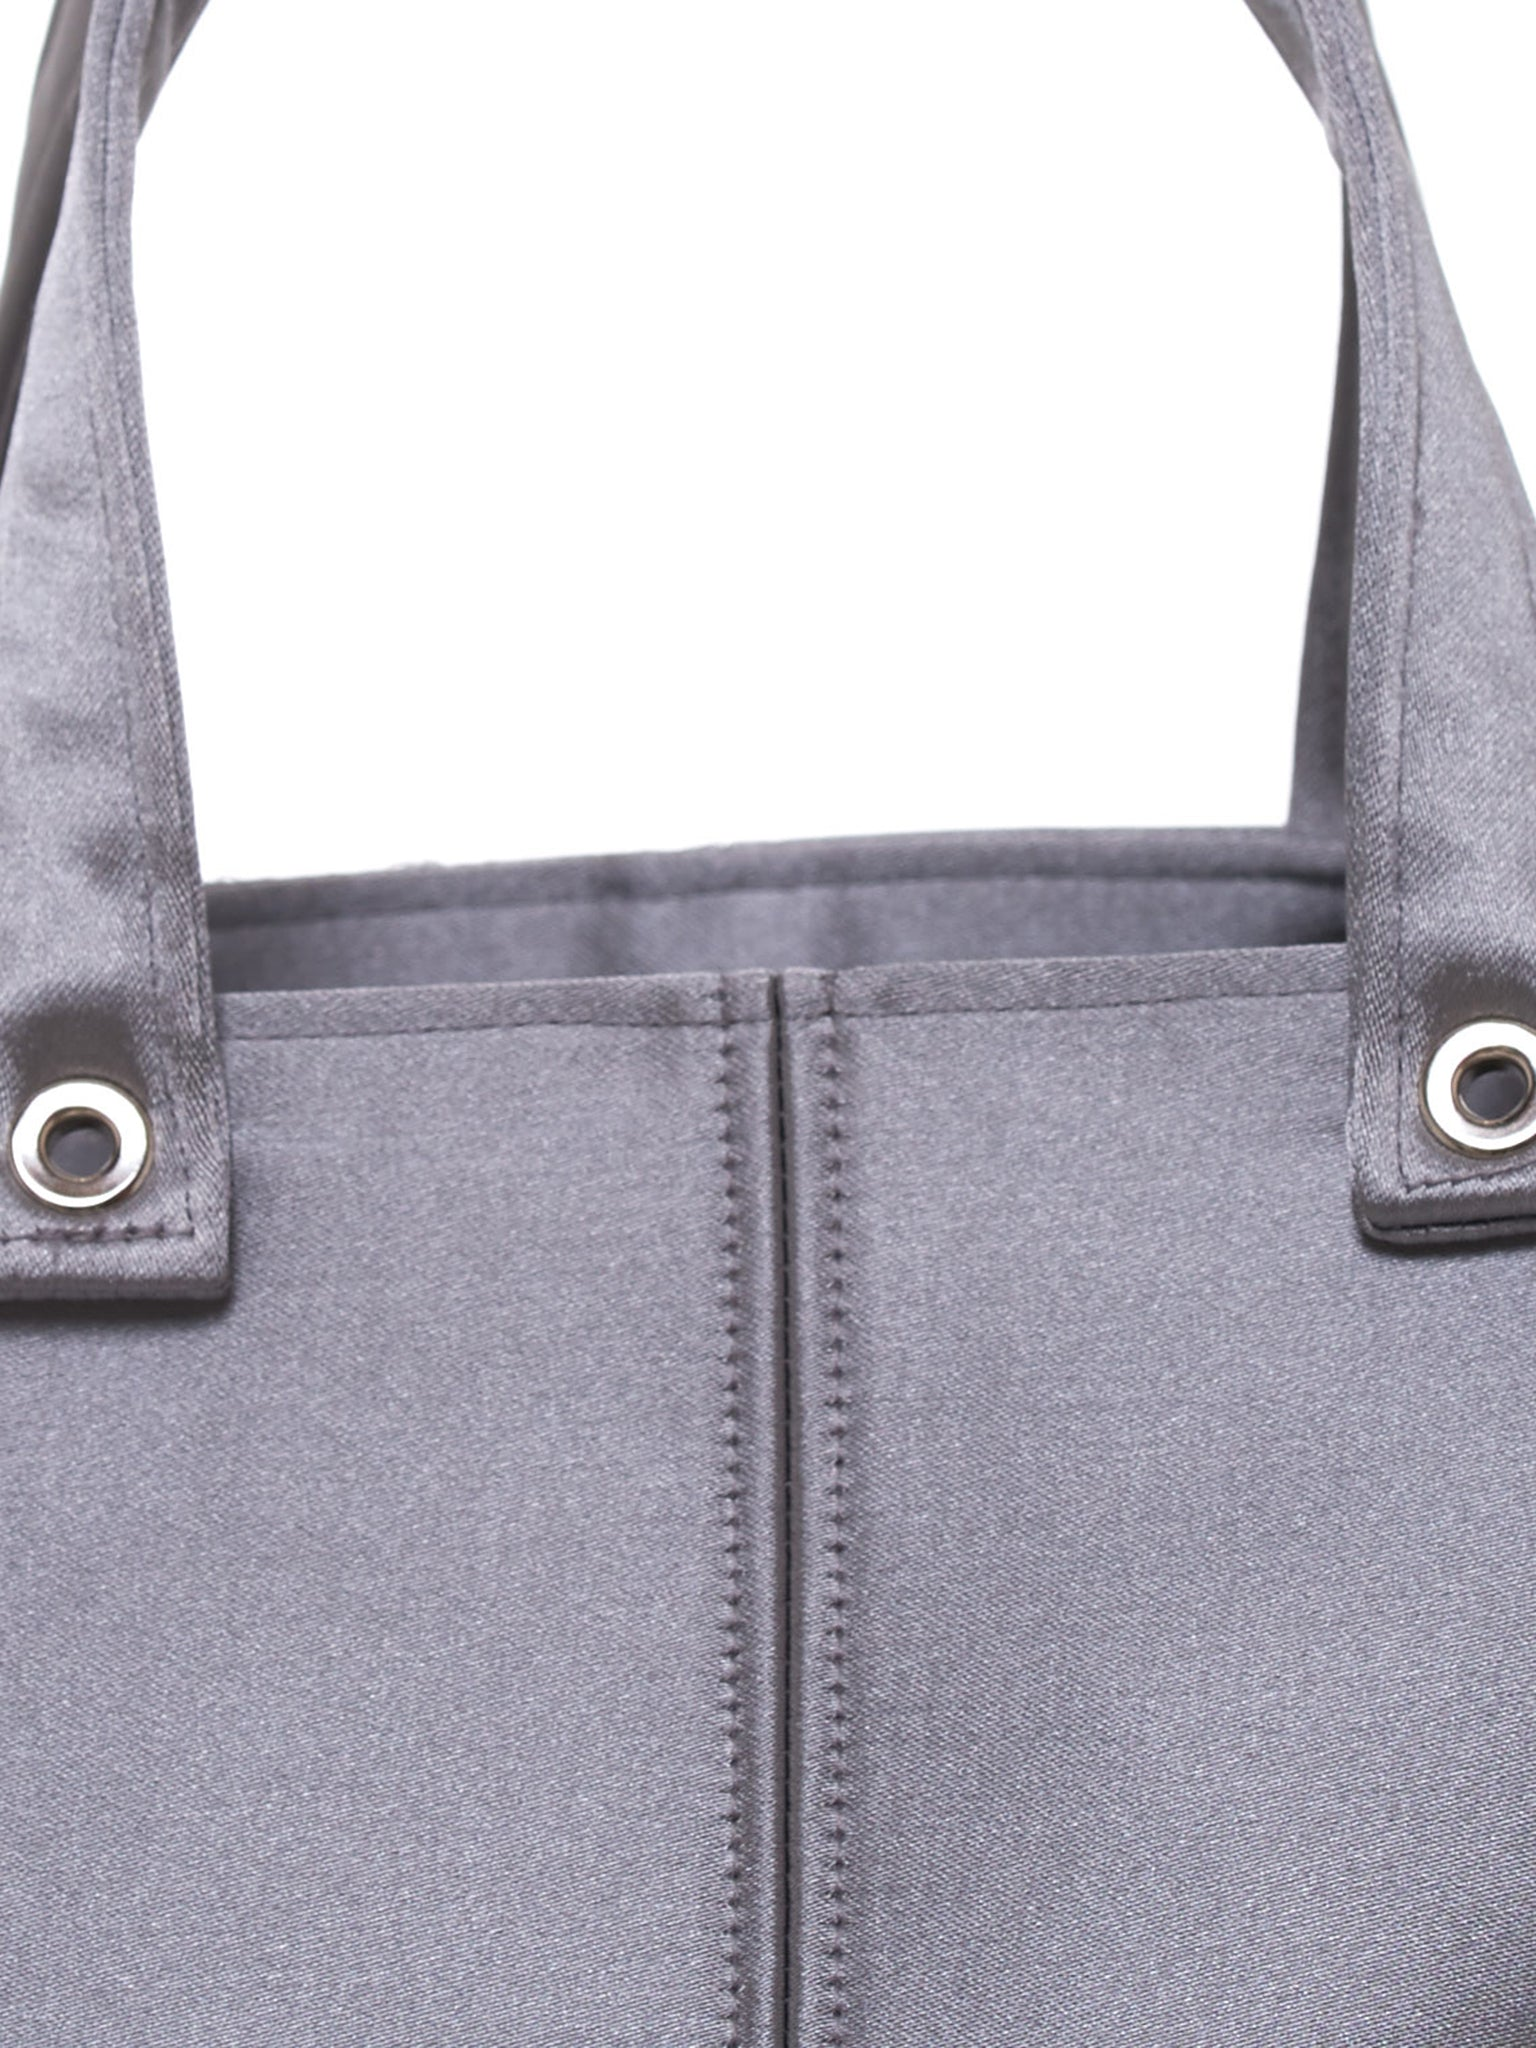 Ludovic de Saint Sernin Bag - Hlorenzo Detail